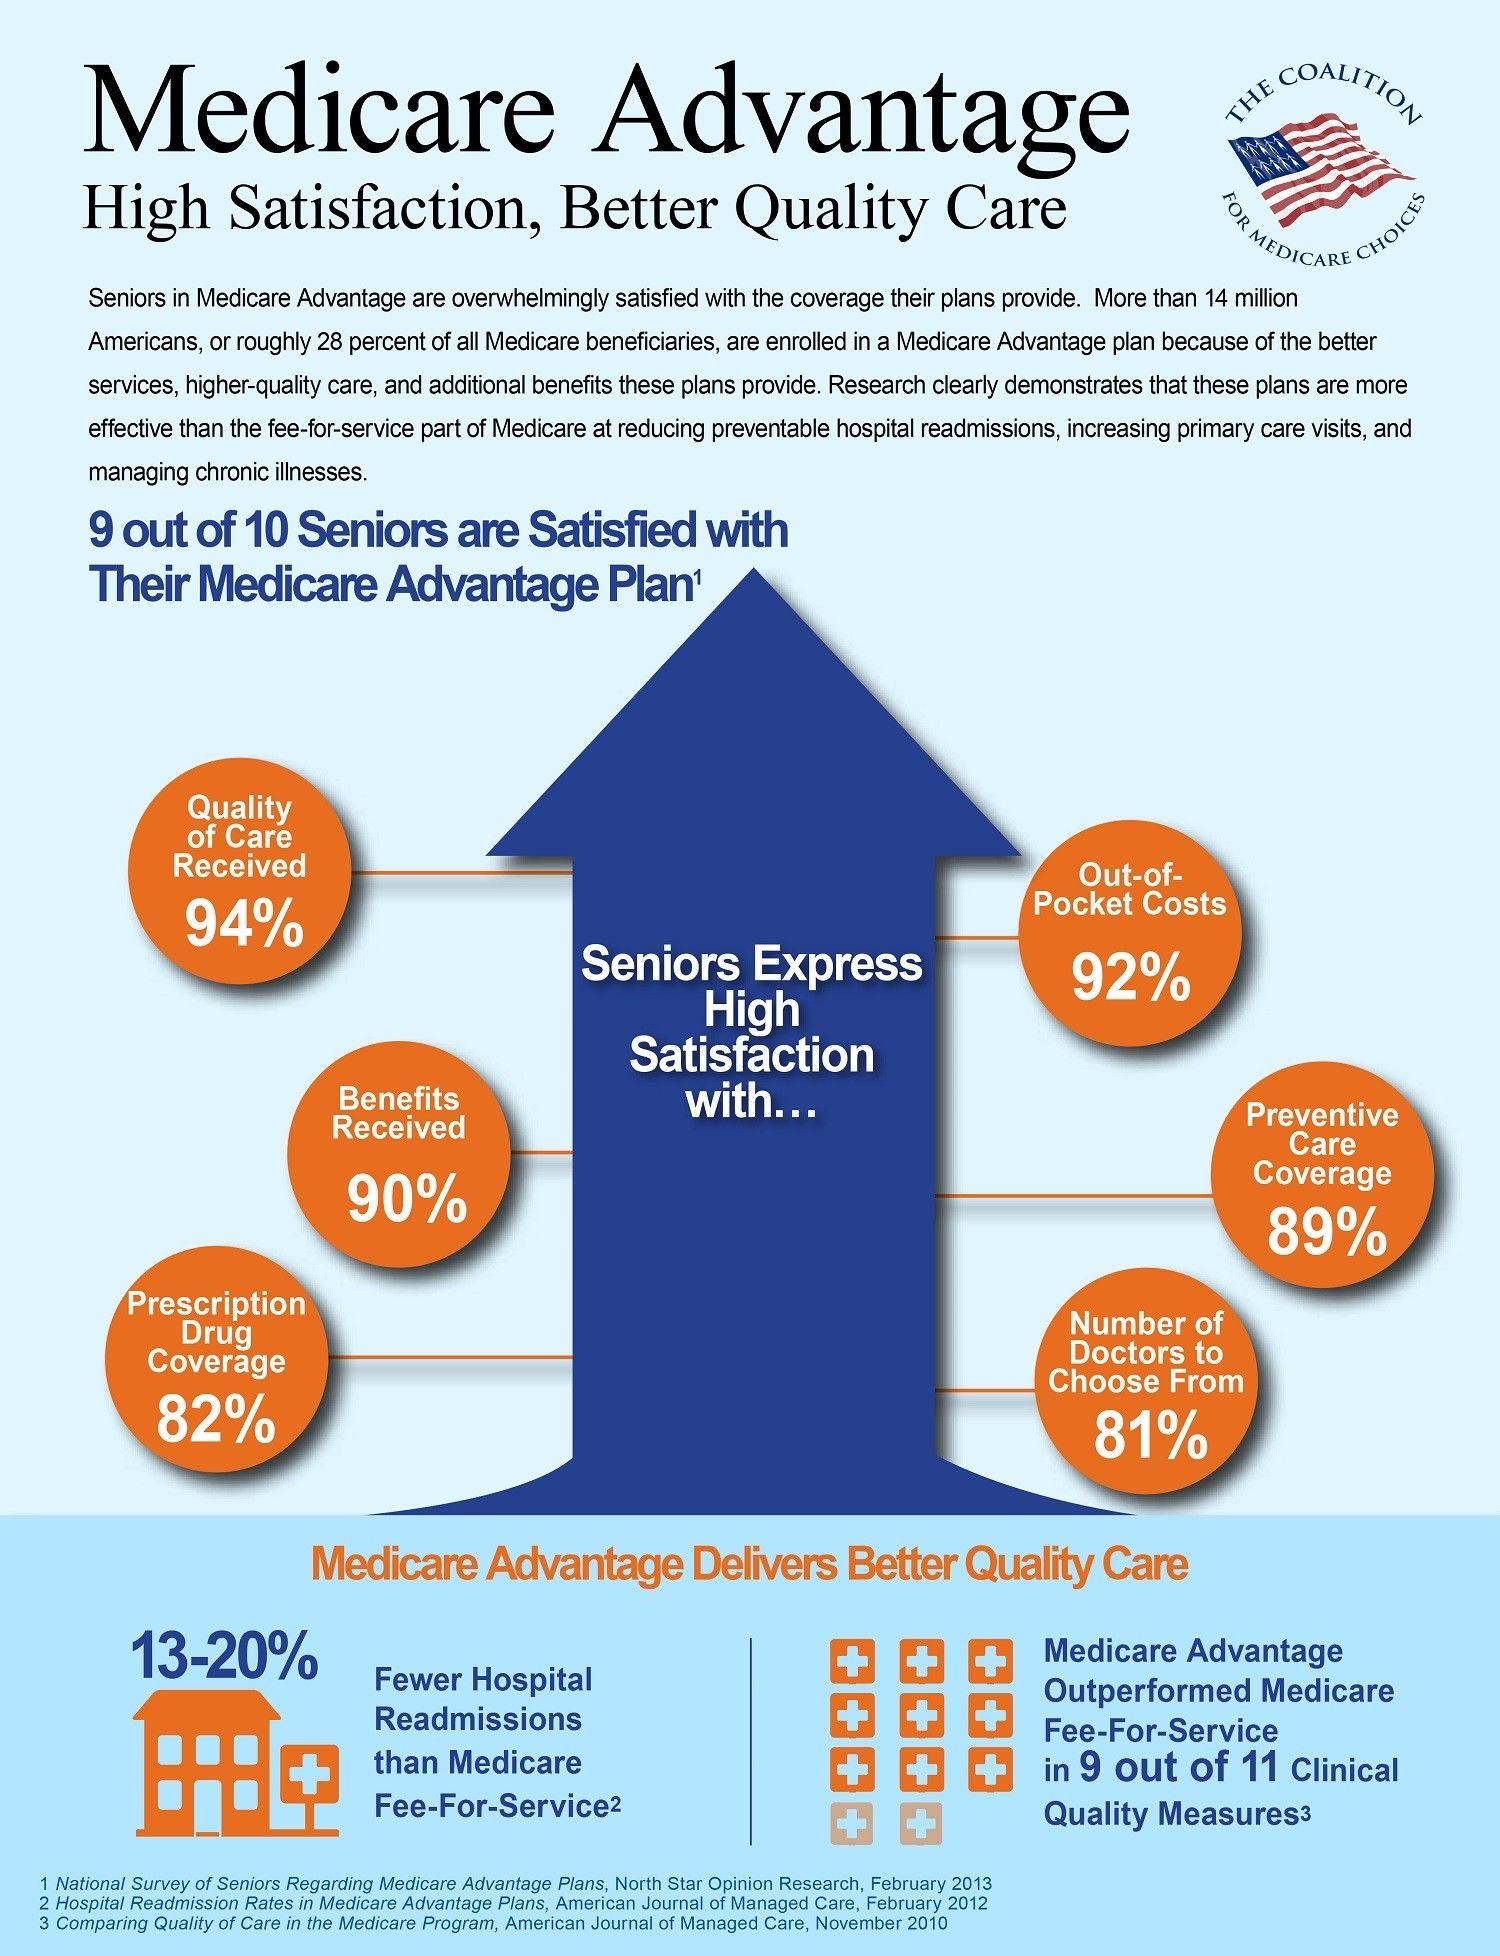 Medicare advantage high satisfaction better quality care